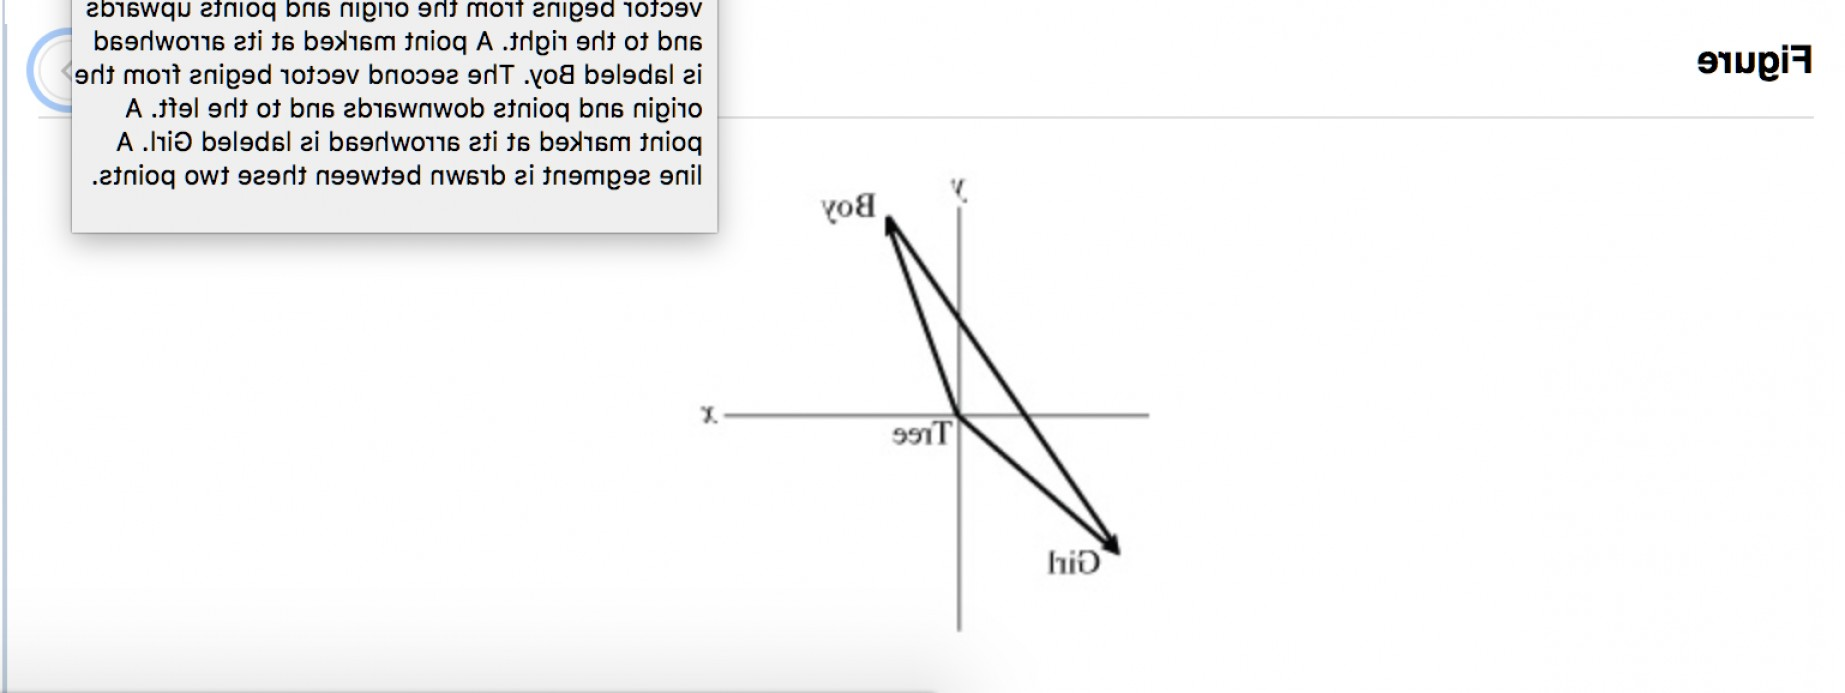 Adding Vector Components By: Using Method Vector Addition Components Determine Displacement Boy Girl Figure Express A Q